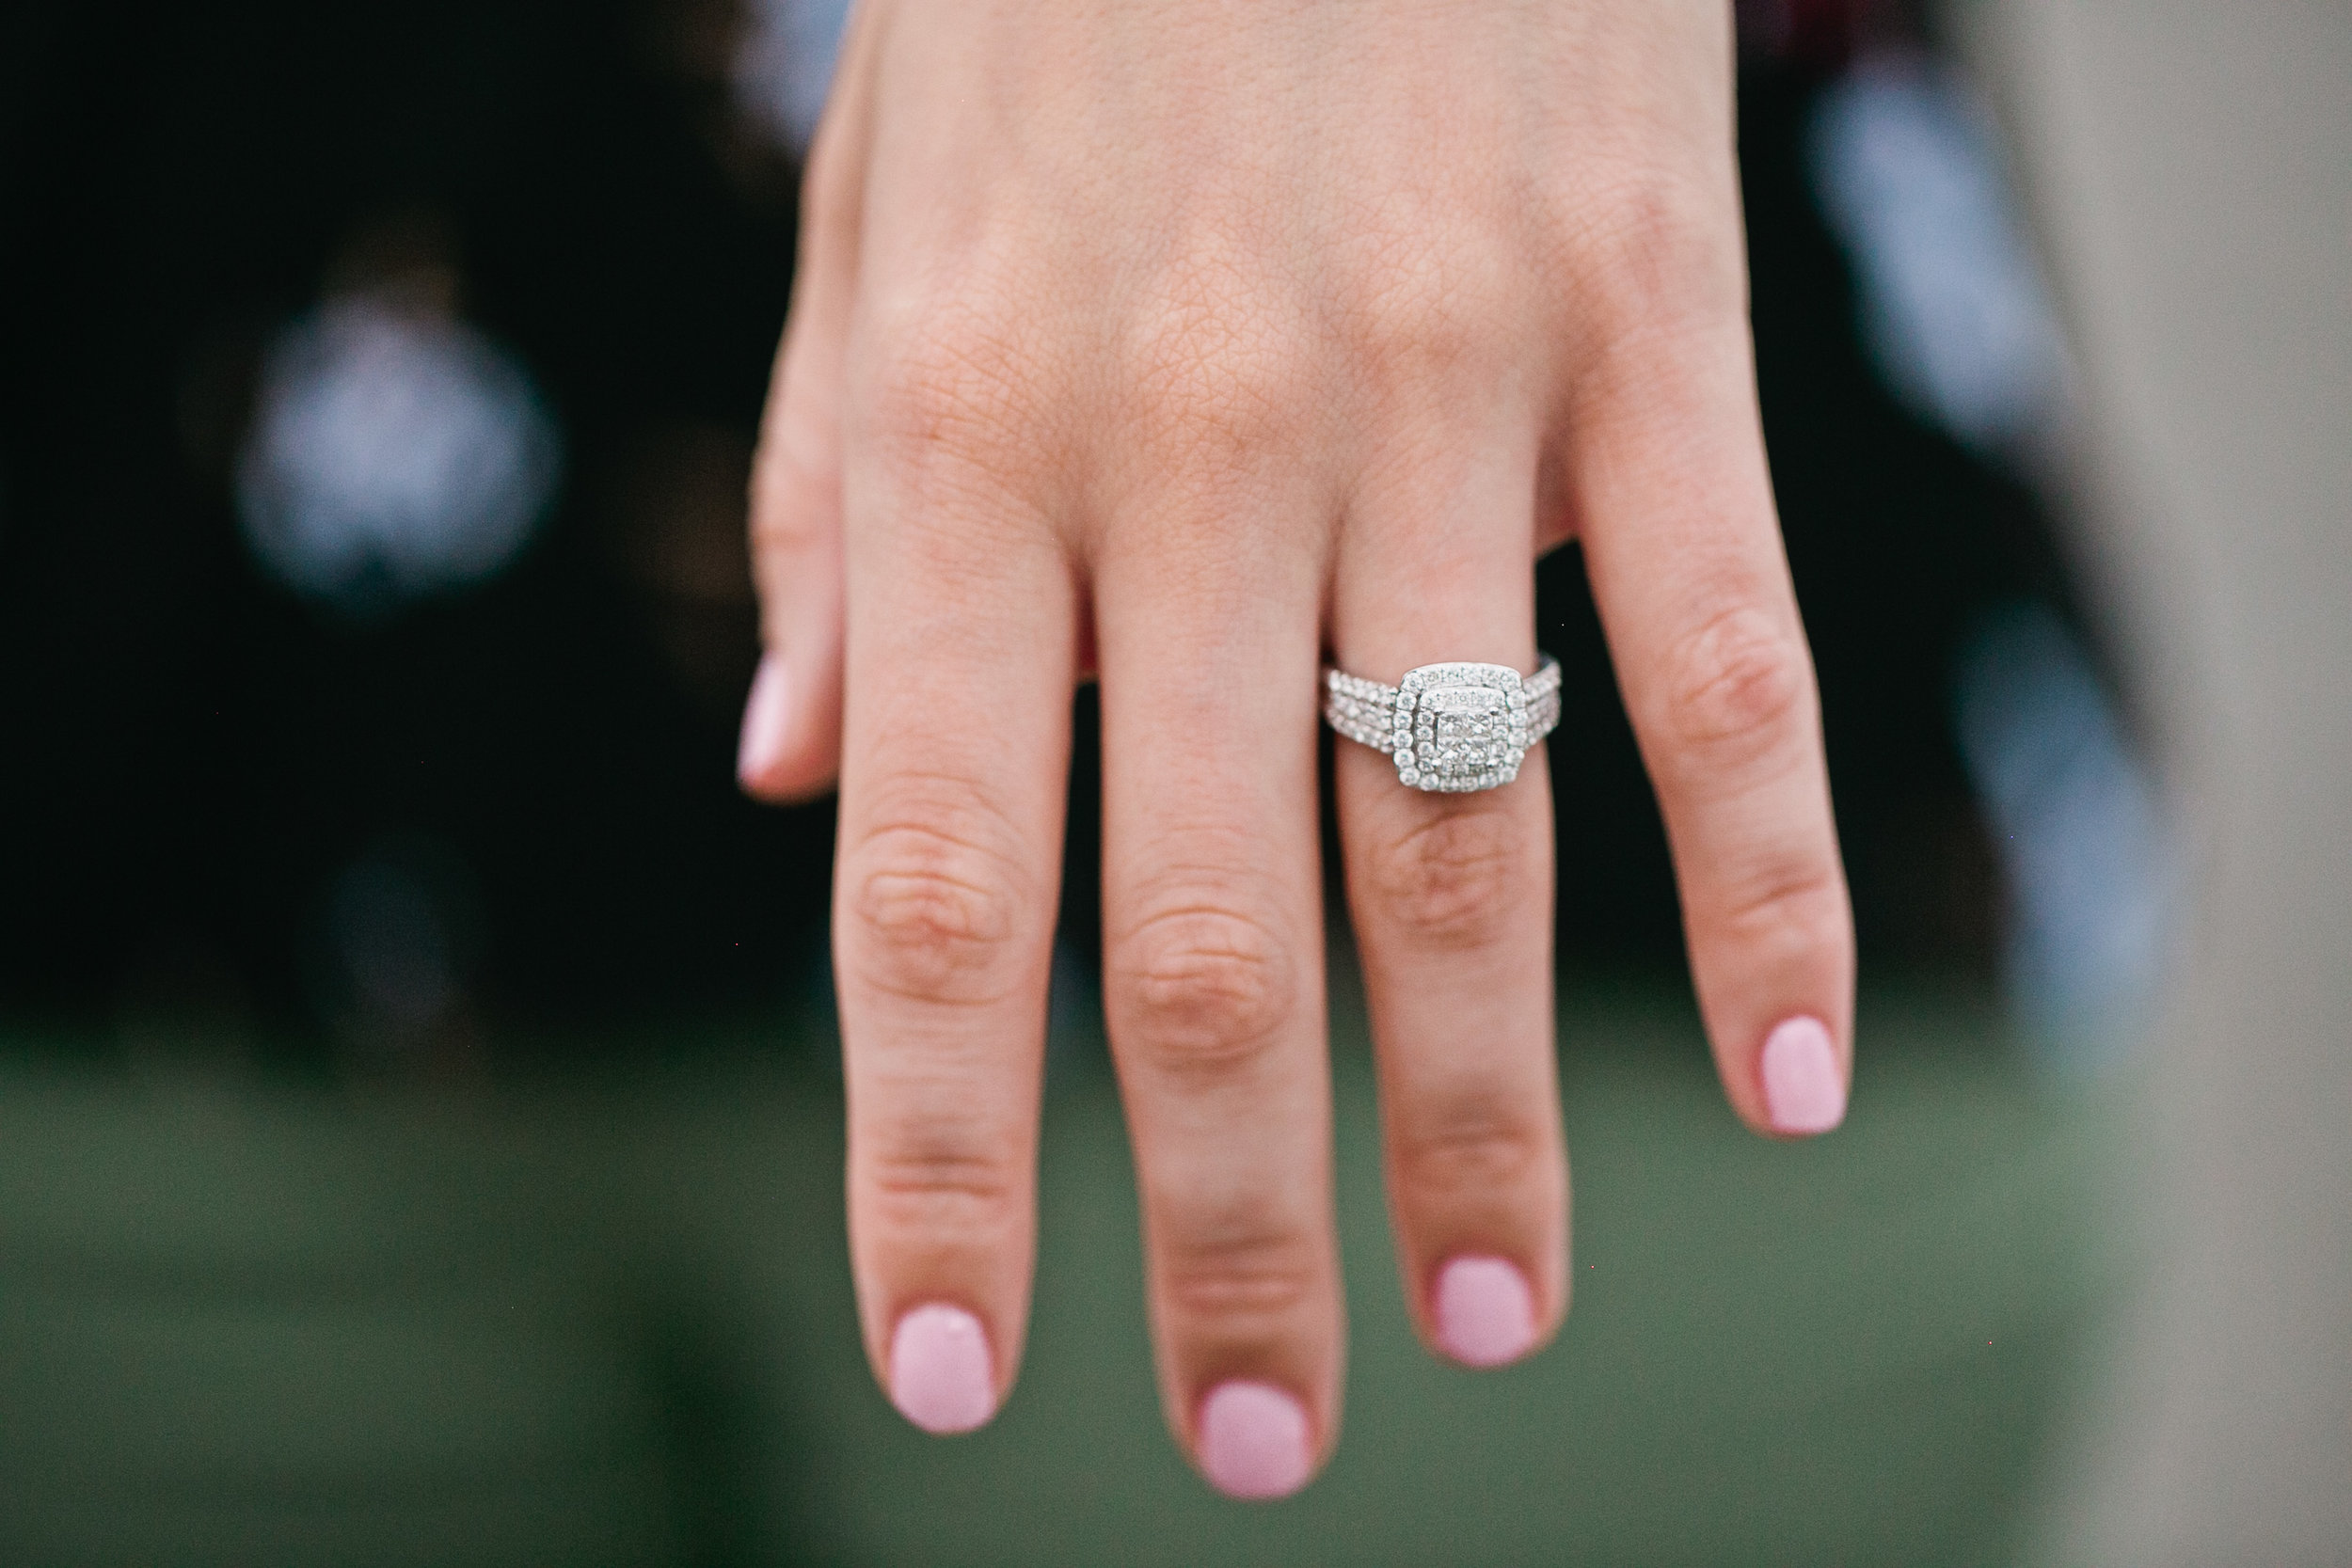 check out that ring!!! it is gorgeous! so sparkly. three layers of halo diamonds square vintage engagement ring